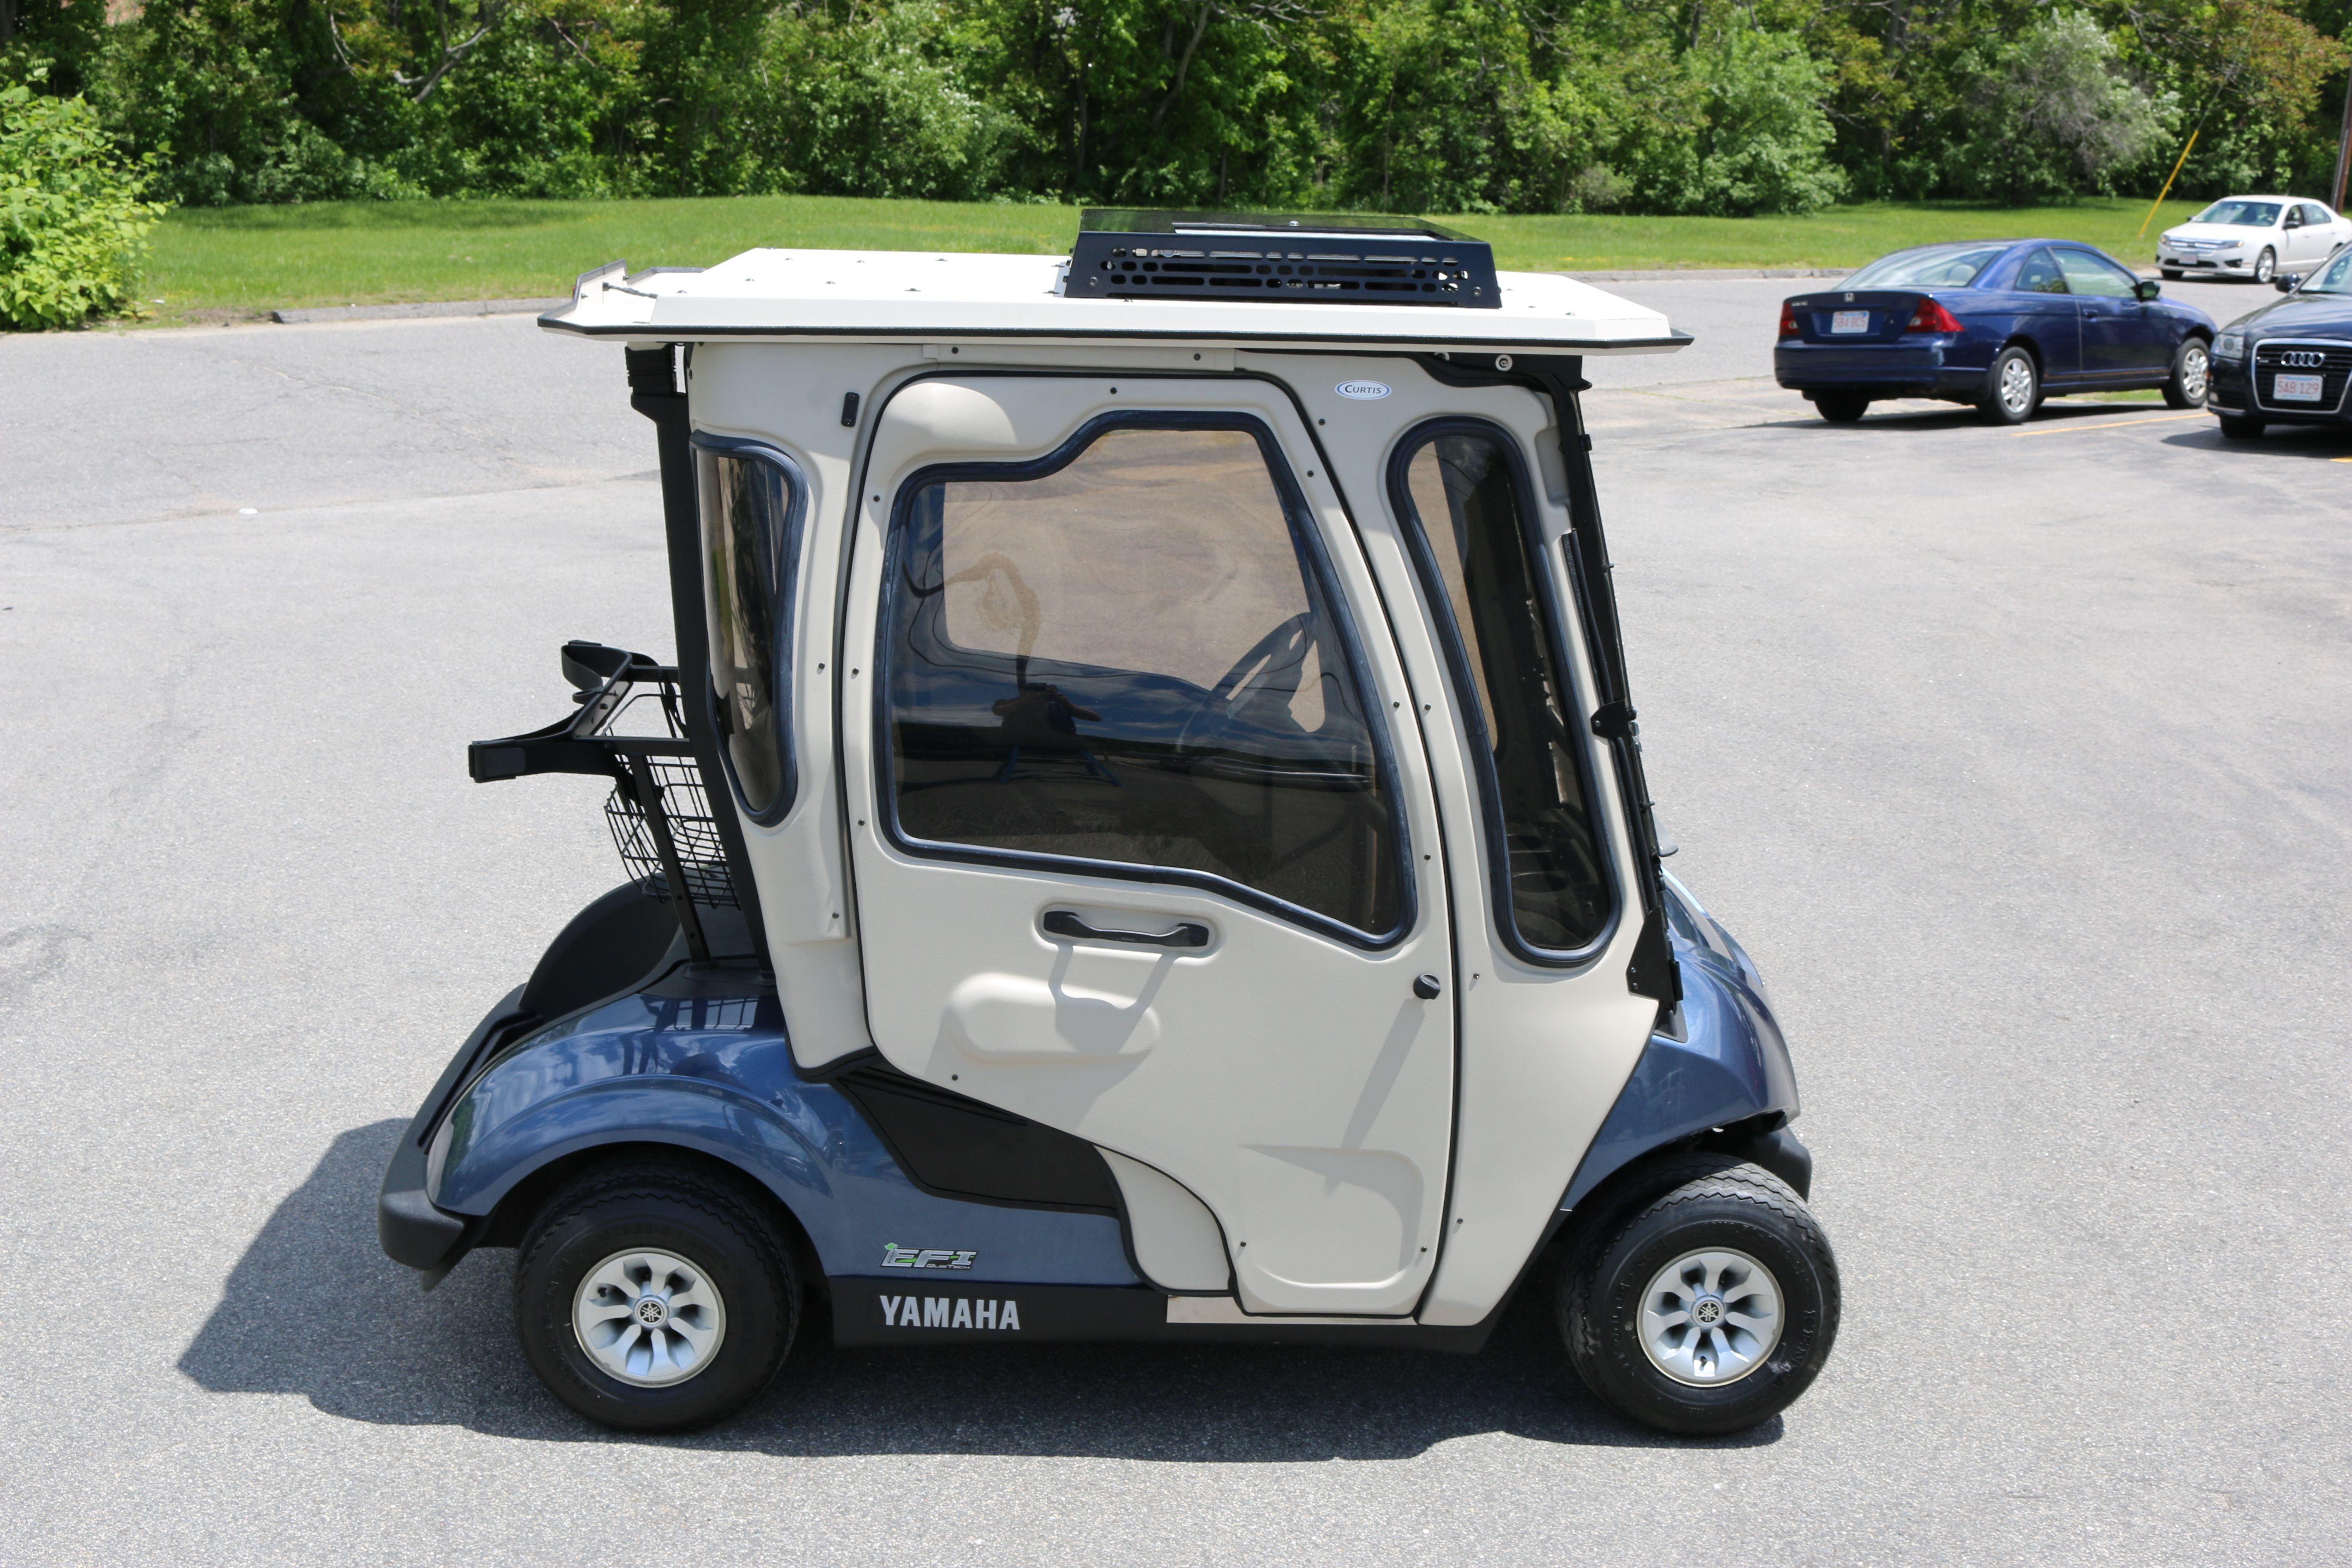 Air Conditioning For Yamaha Drive Golf Carts Vehicles Rolling Stock